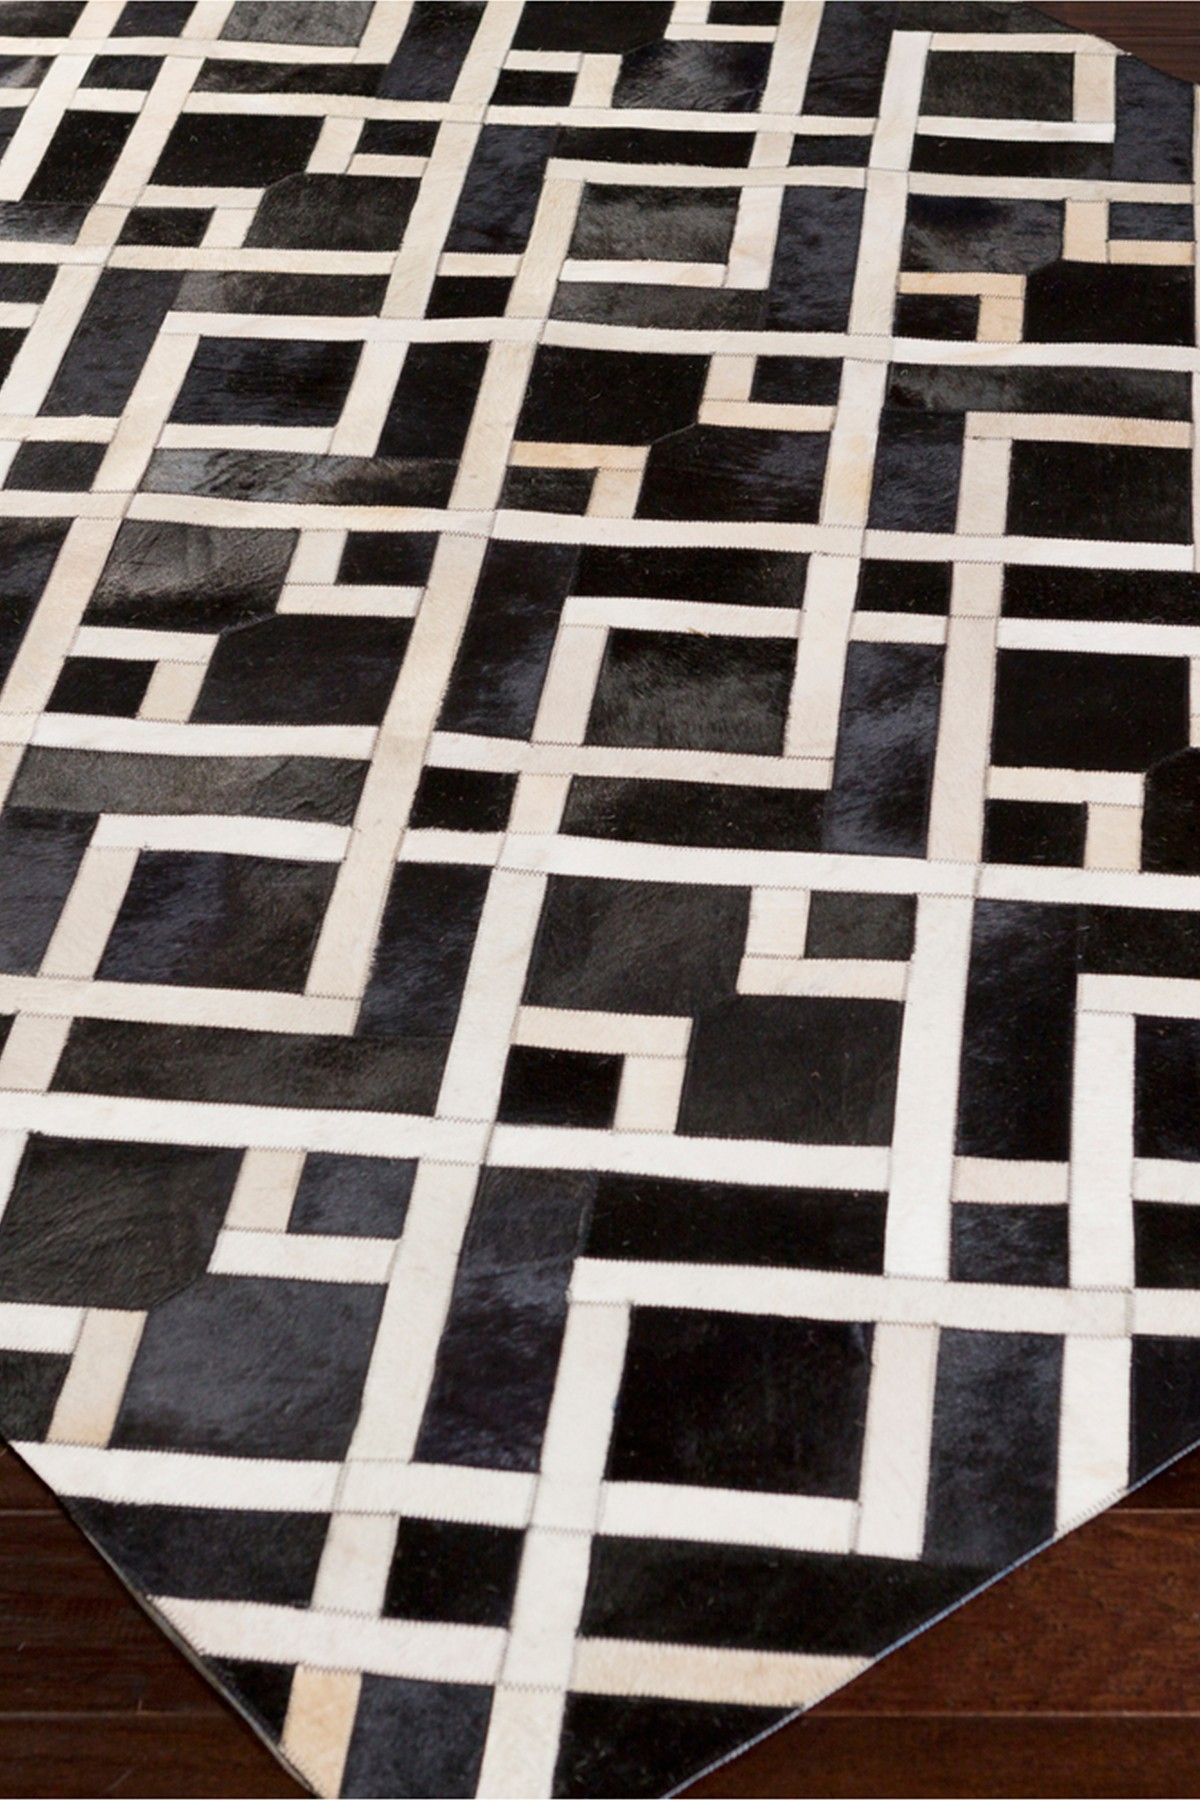 Trail Genuine Hair On Hide Area Rug - Black/Ivory by Surya on @HauteLook